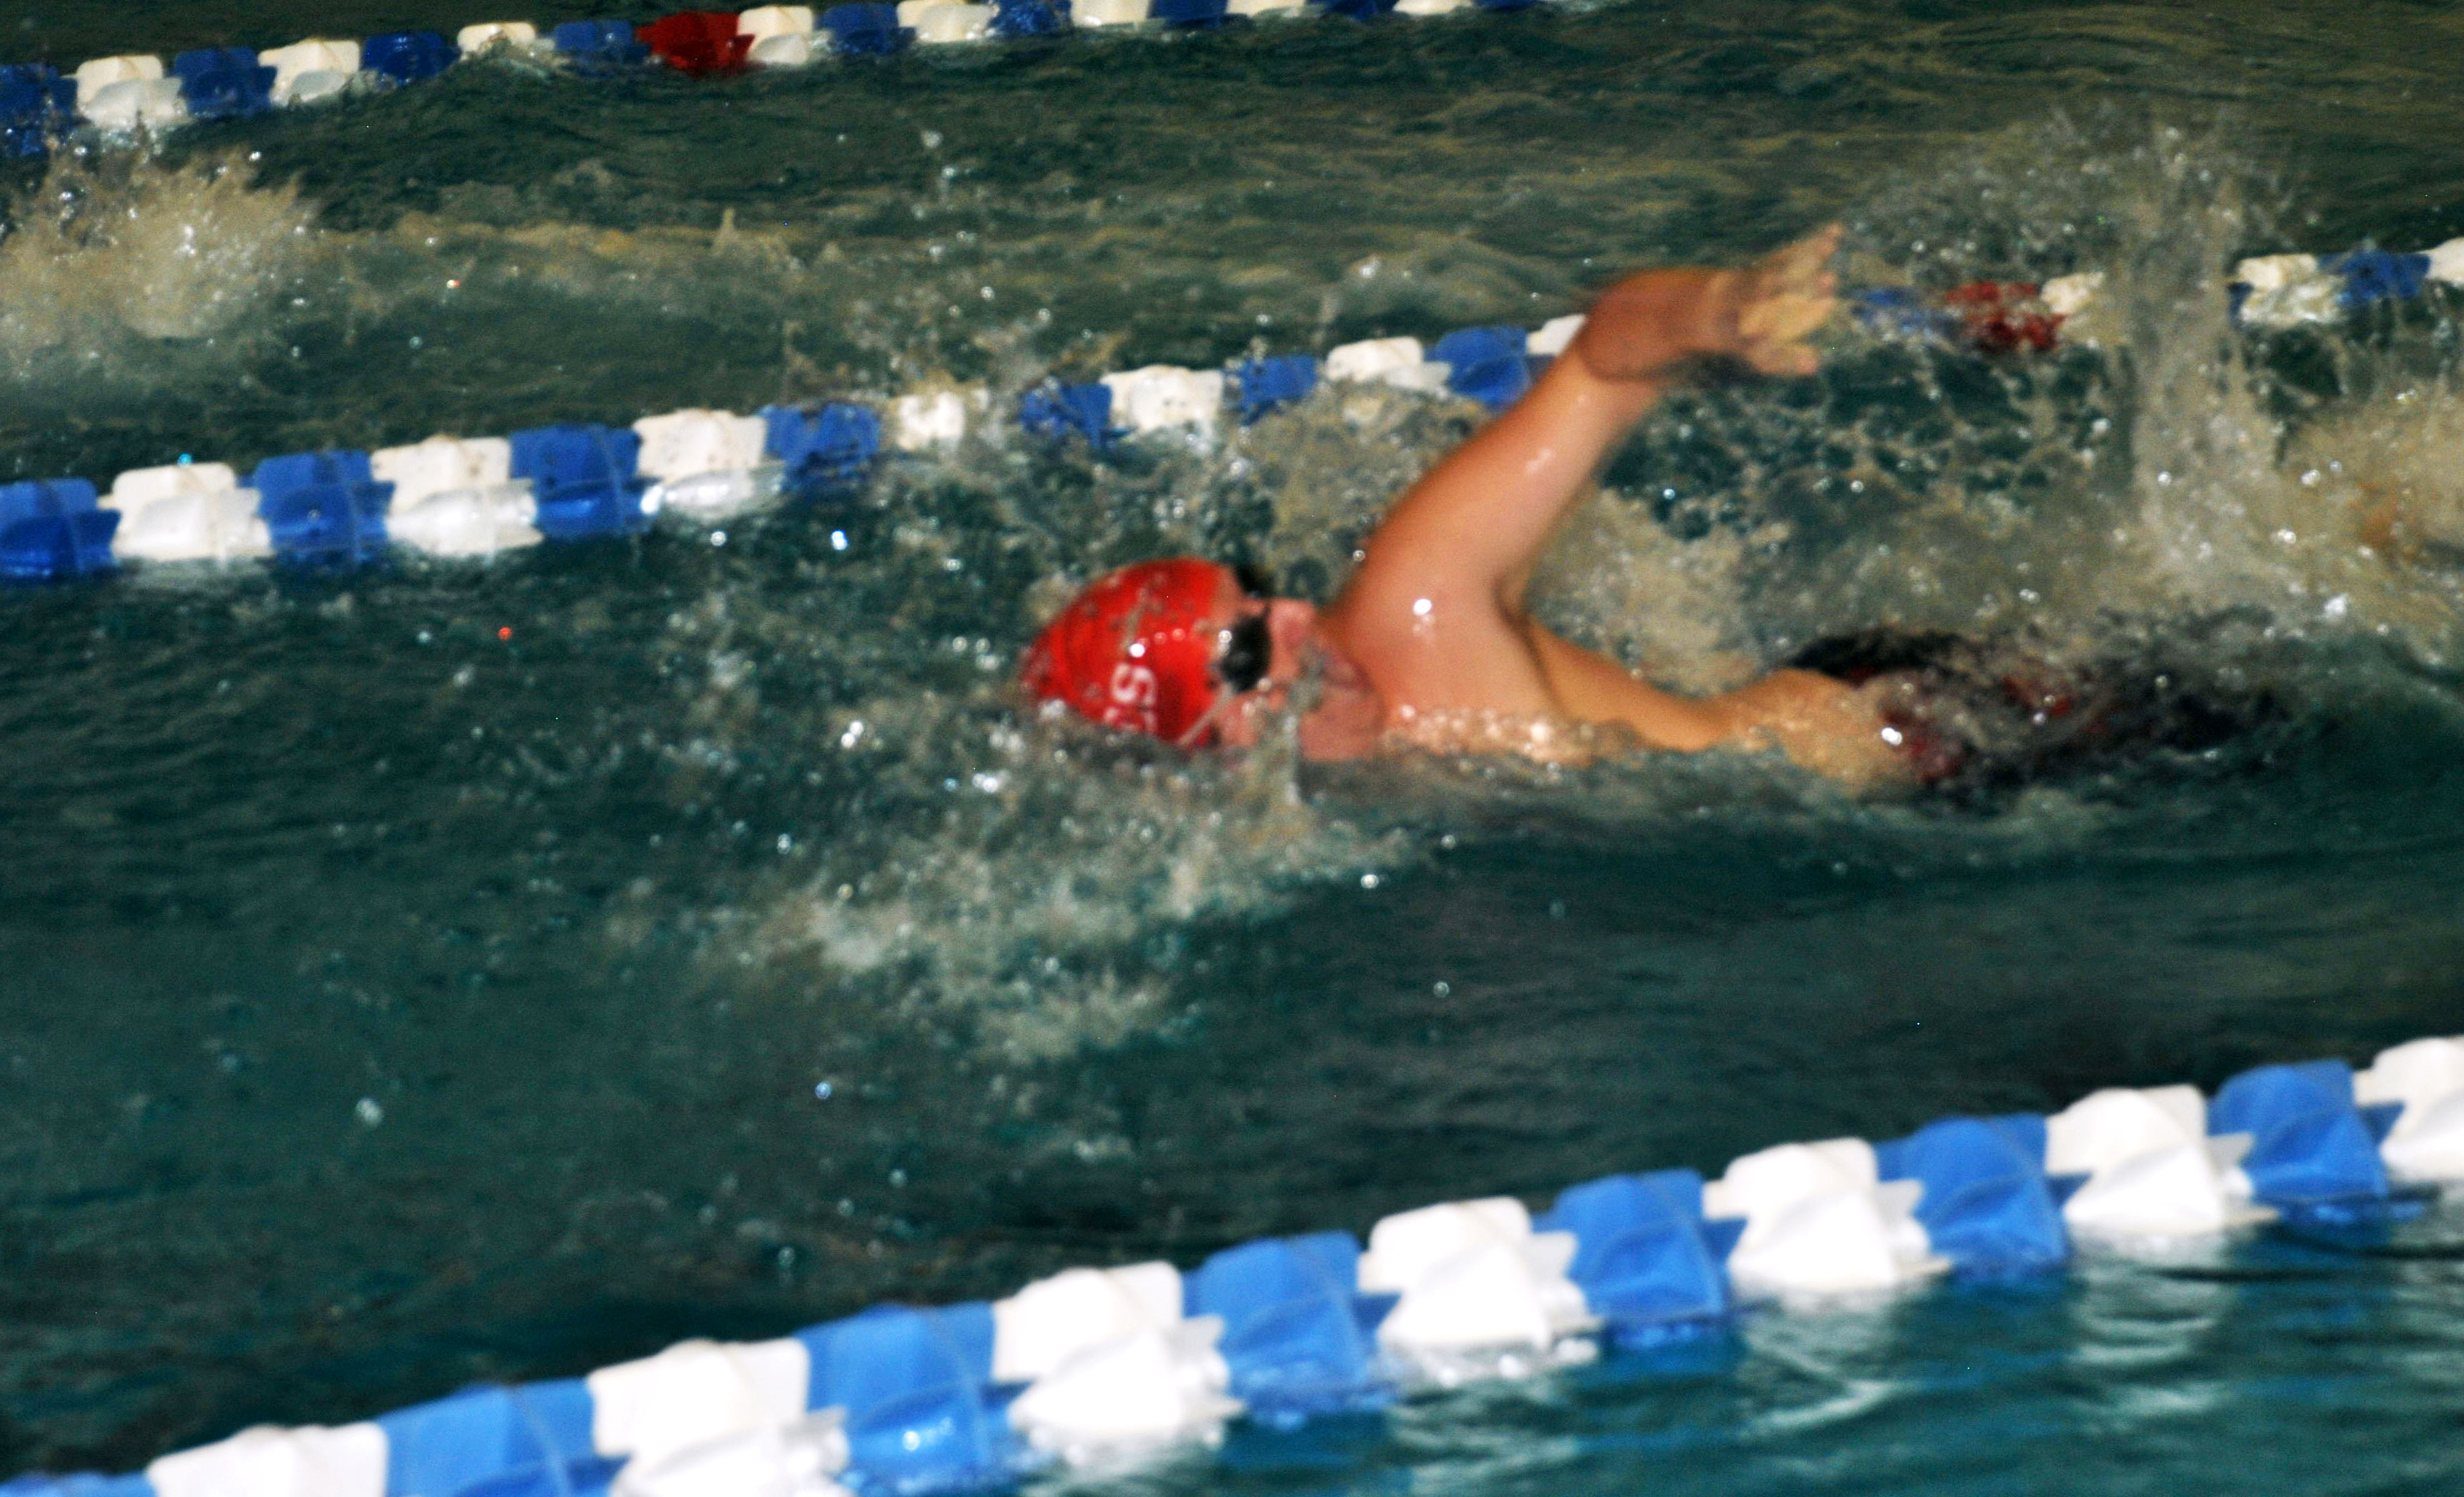 Senior Conner Henderson comes up for a breath during his 100 freestyle swim. (Photo by Karsen McCarter)